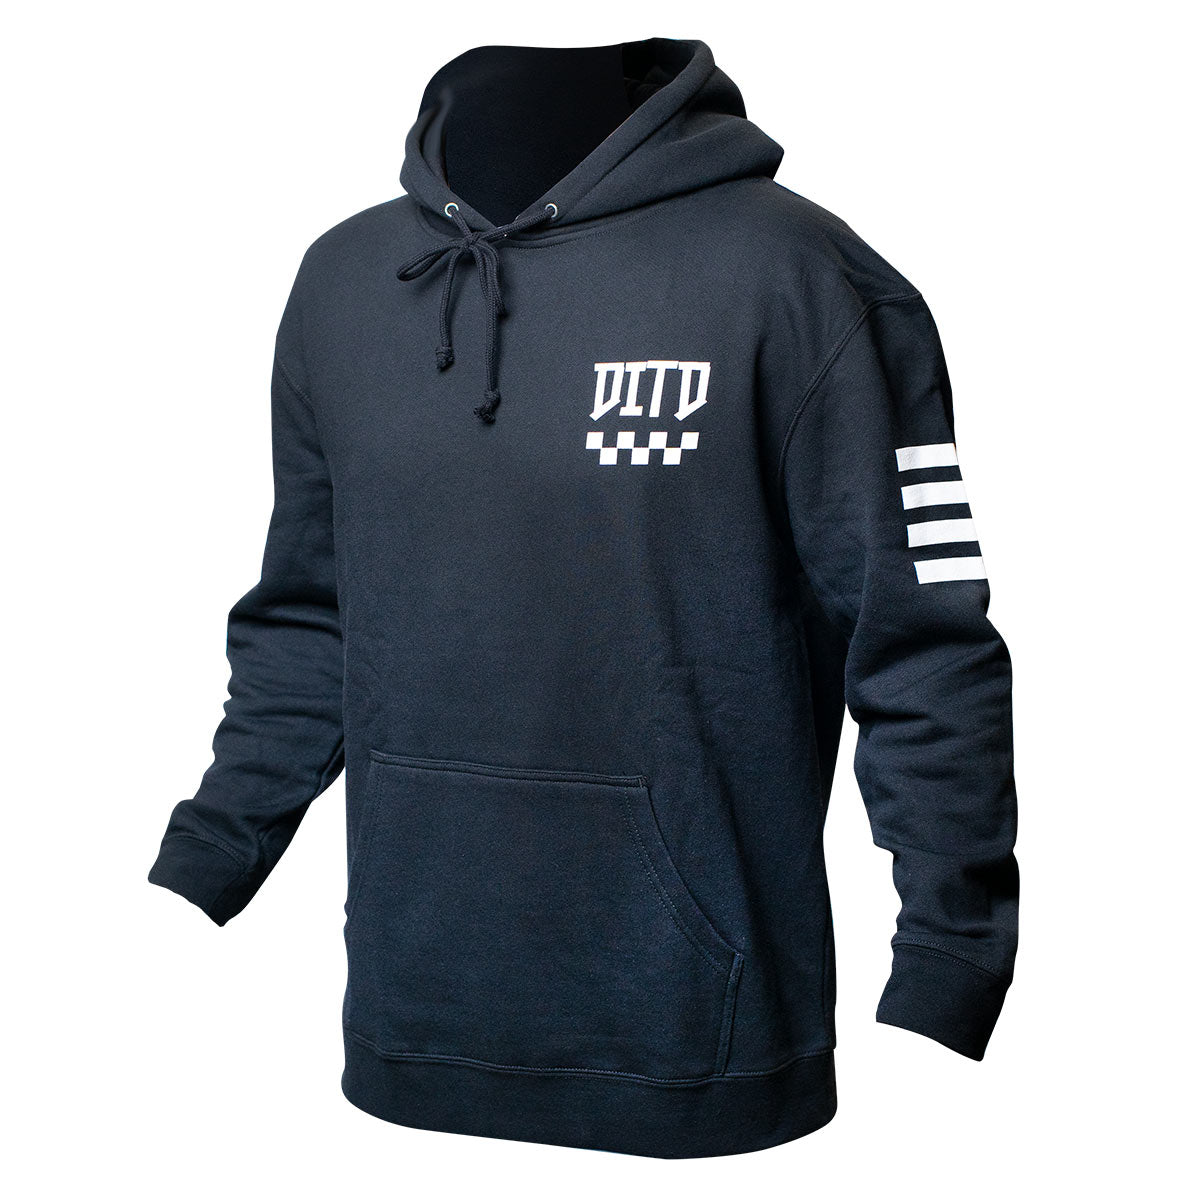 Day in the Dirt 23 Notorious Hooded Pullover - Black